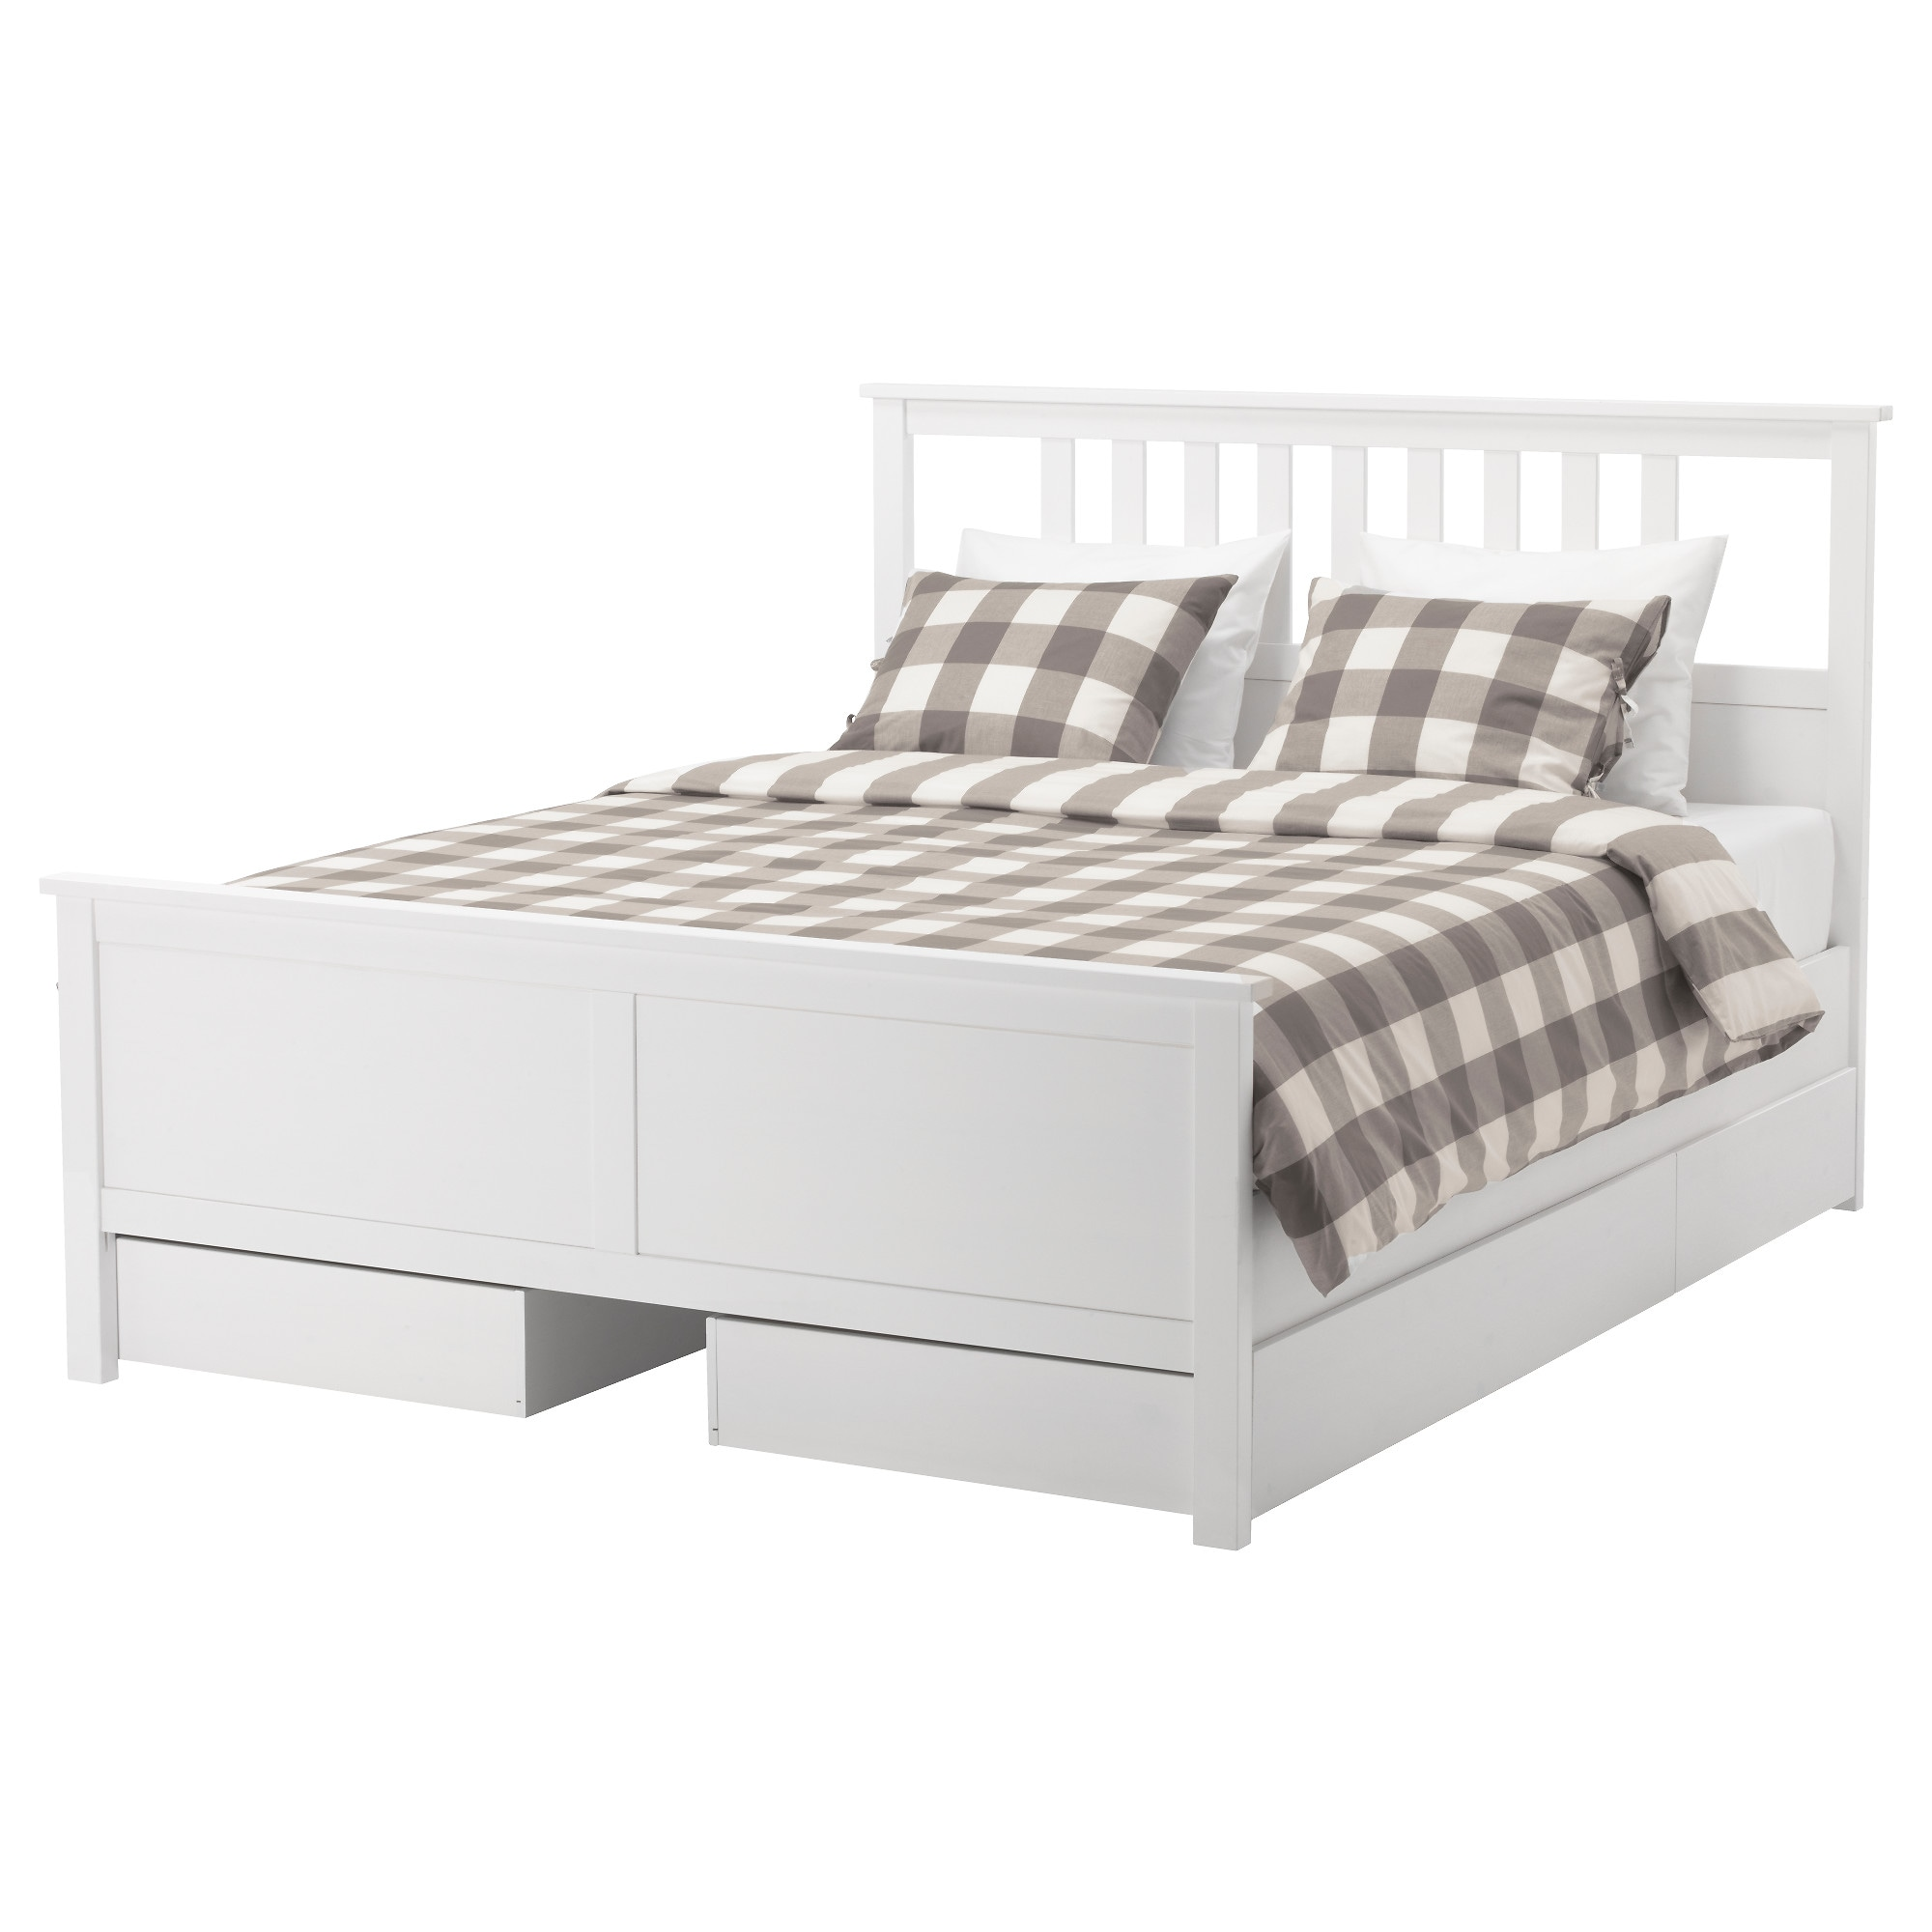 old size sale metal cheap cool frames canada frame queen bed in hemnes twin ikea double of steel